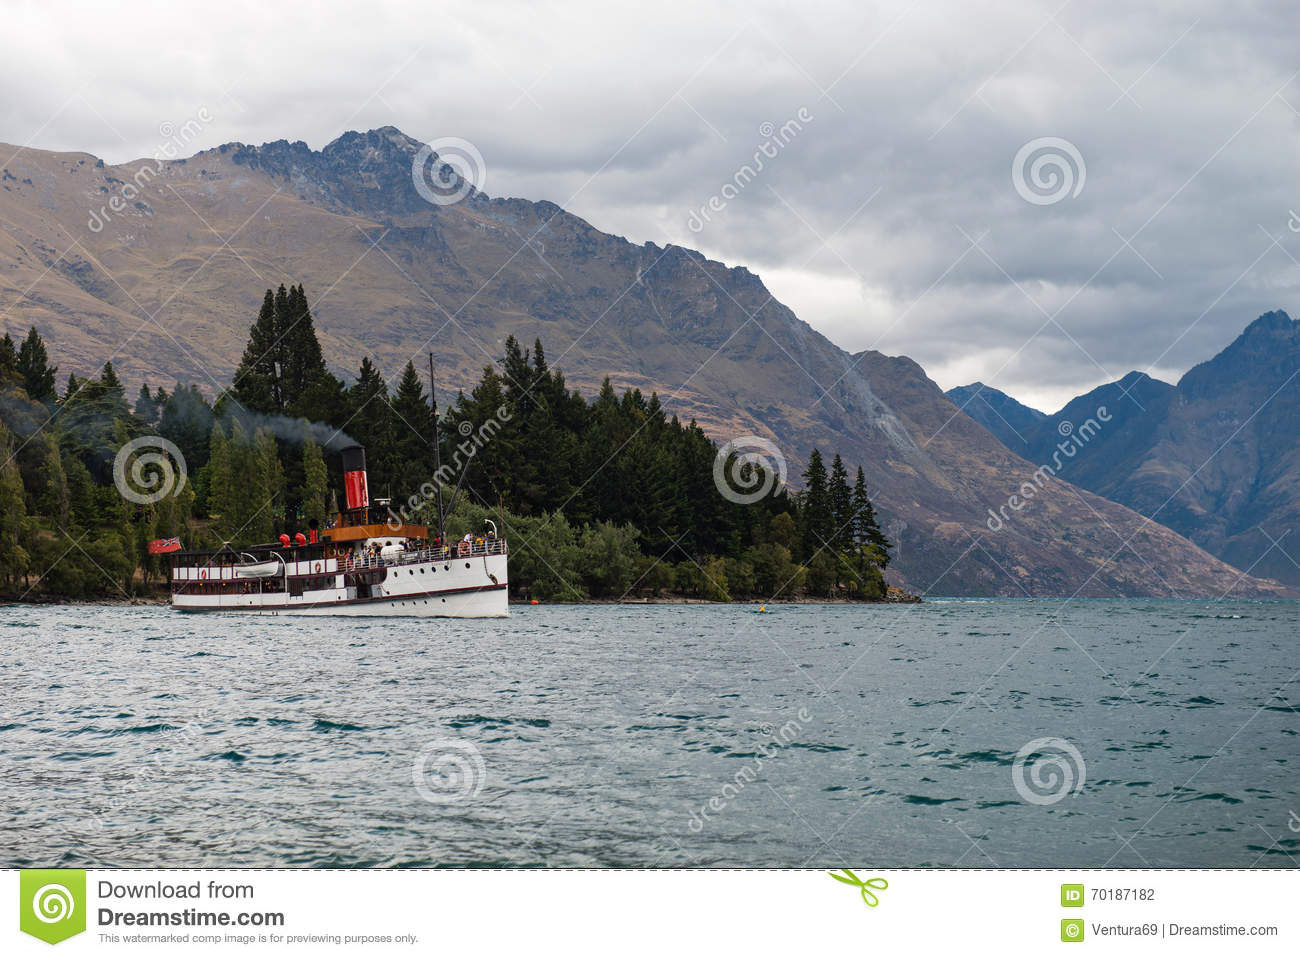 TSS Earnslaw - the only remaining commercial passenger coal-fired steamship in the southern hemisphere